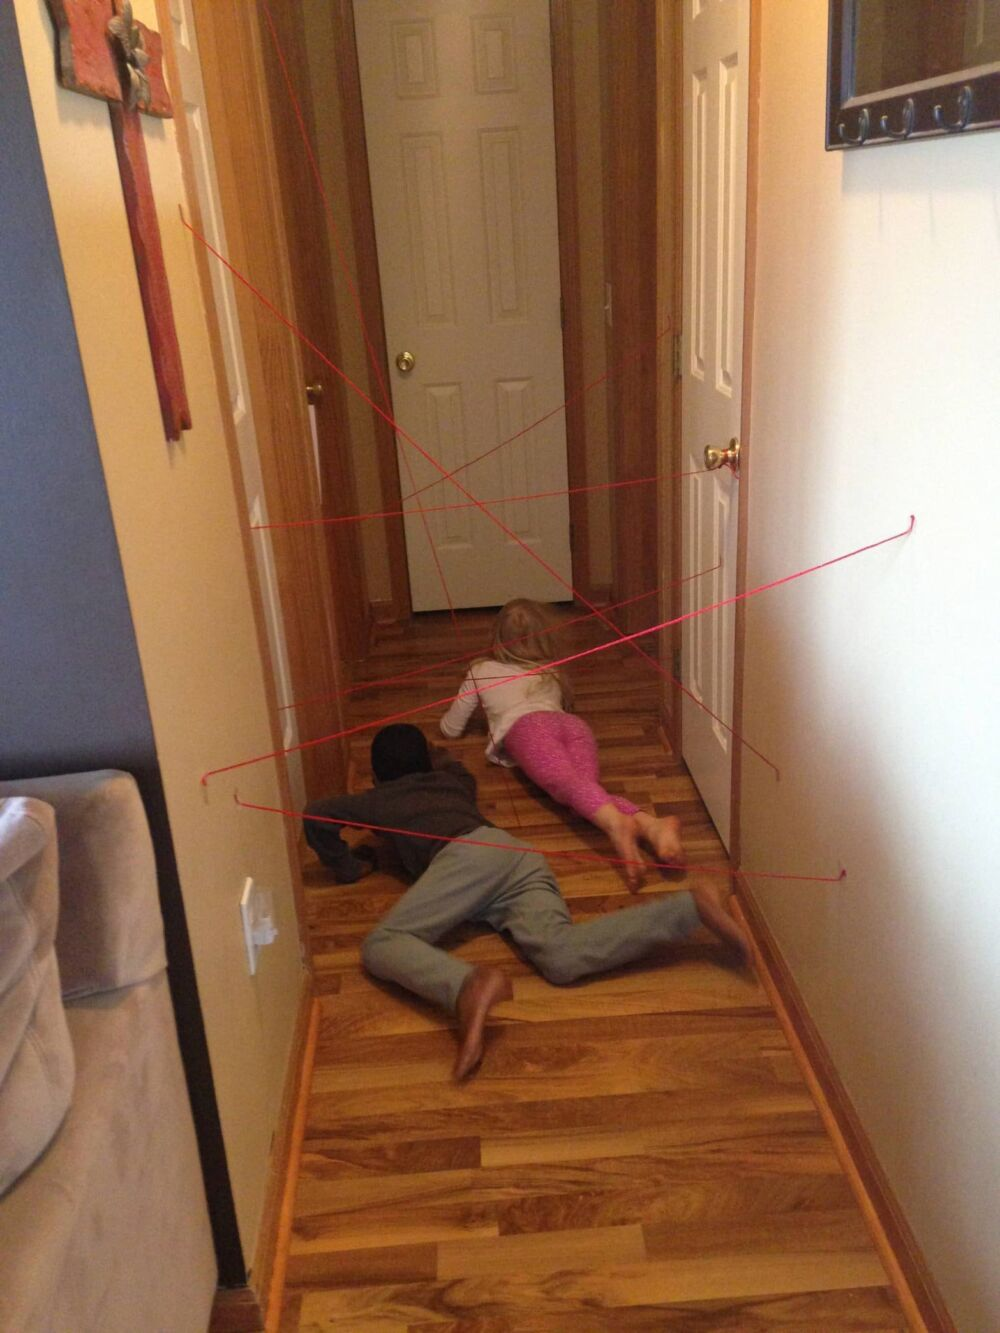 kids finding their way through a maze made out of string taped to the walls of the hallway